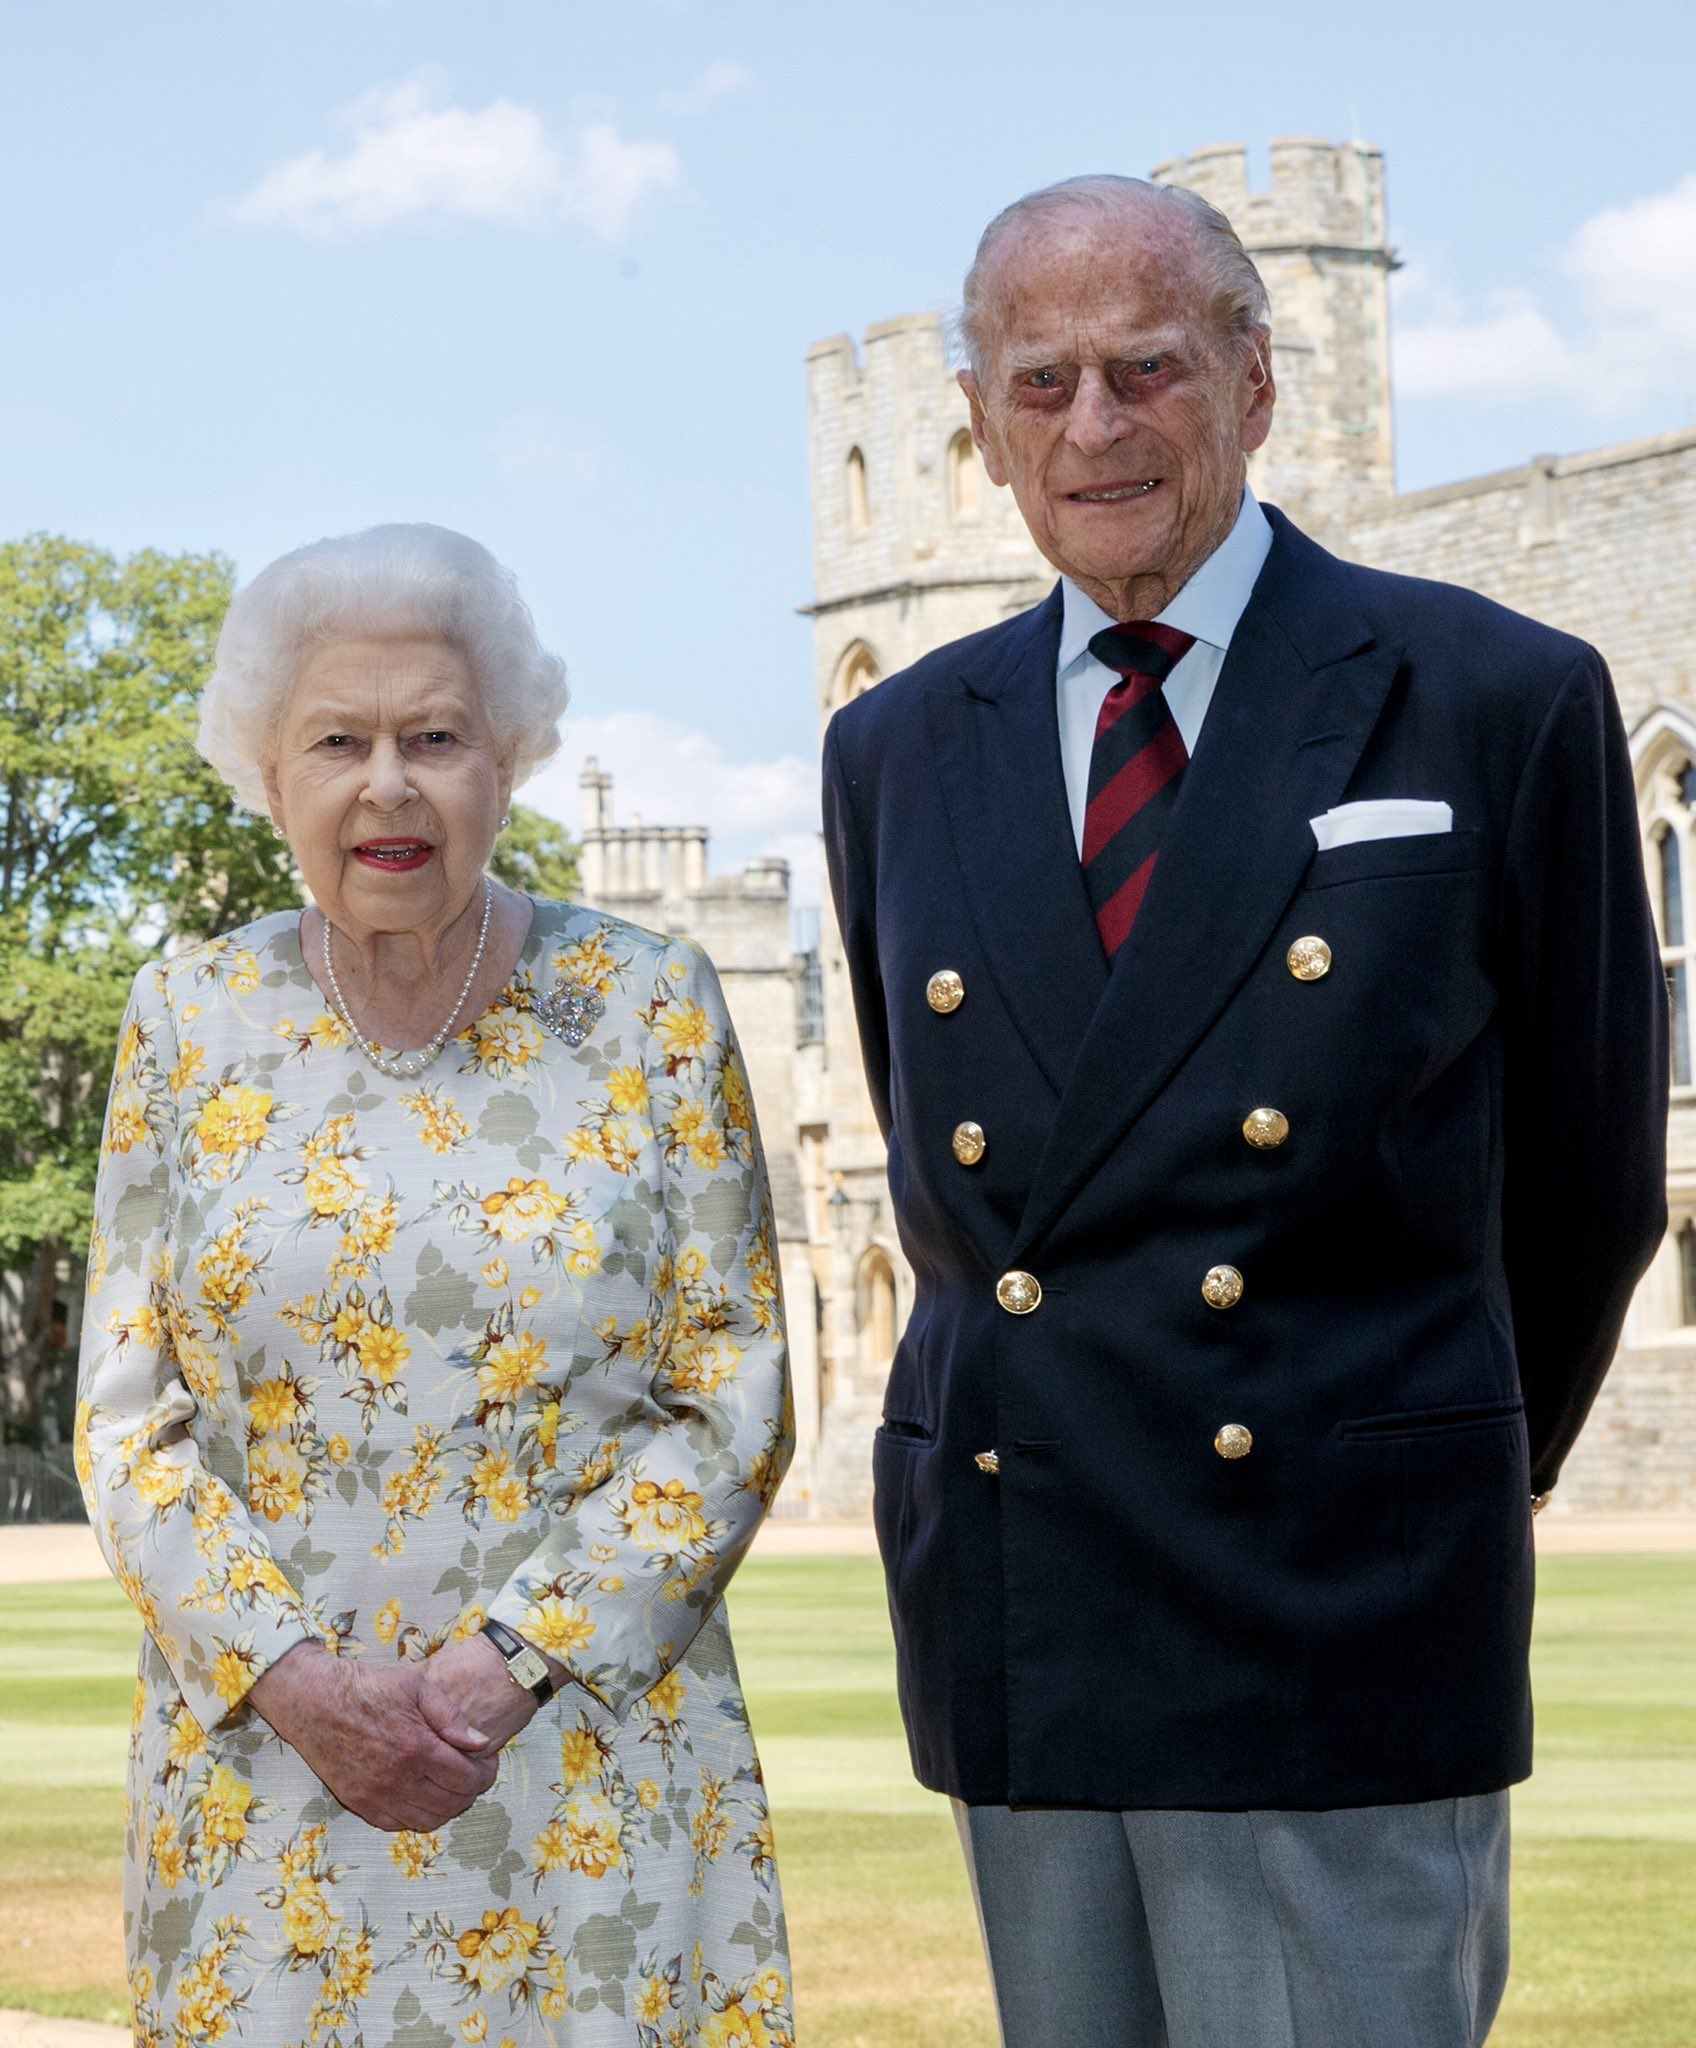 Happy 99th Birthday, Prince Philip! Still going strong.